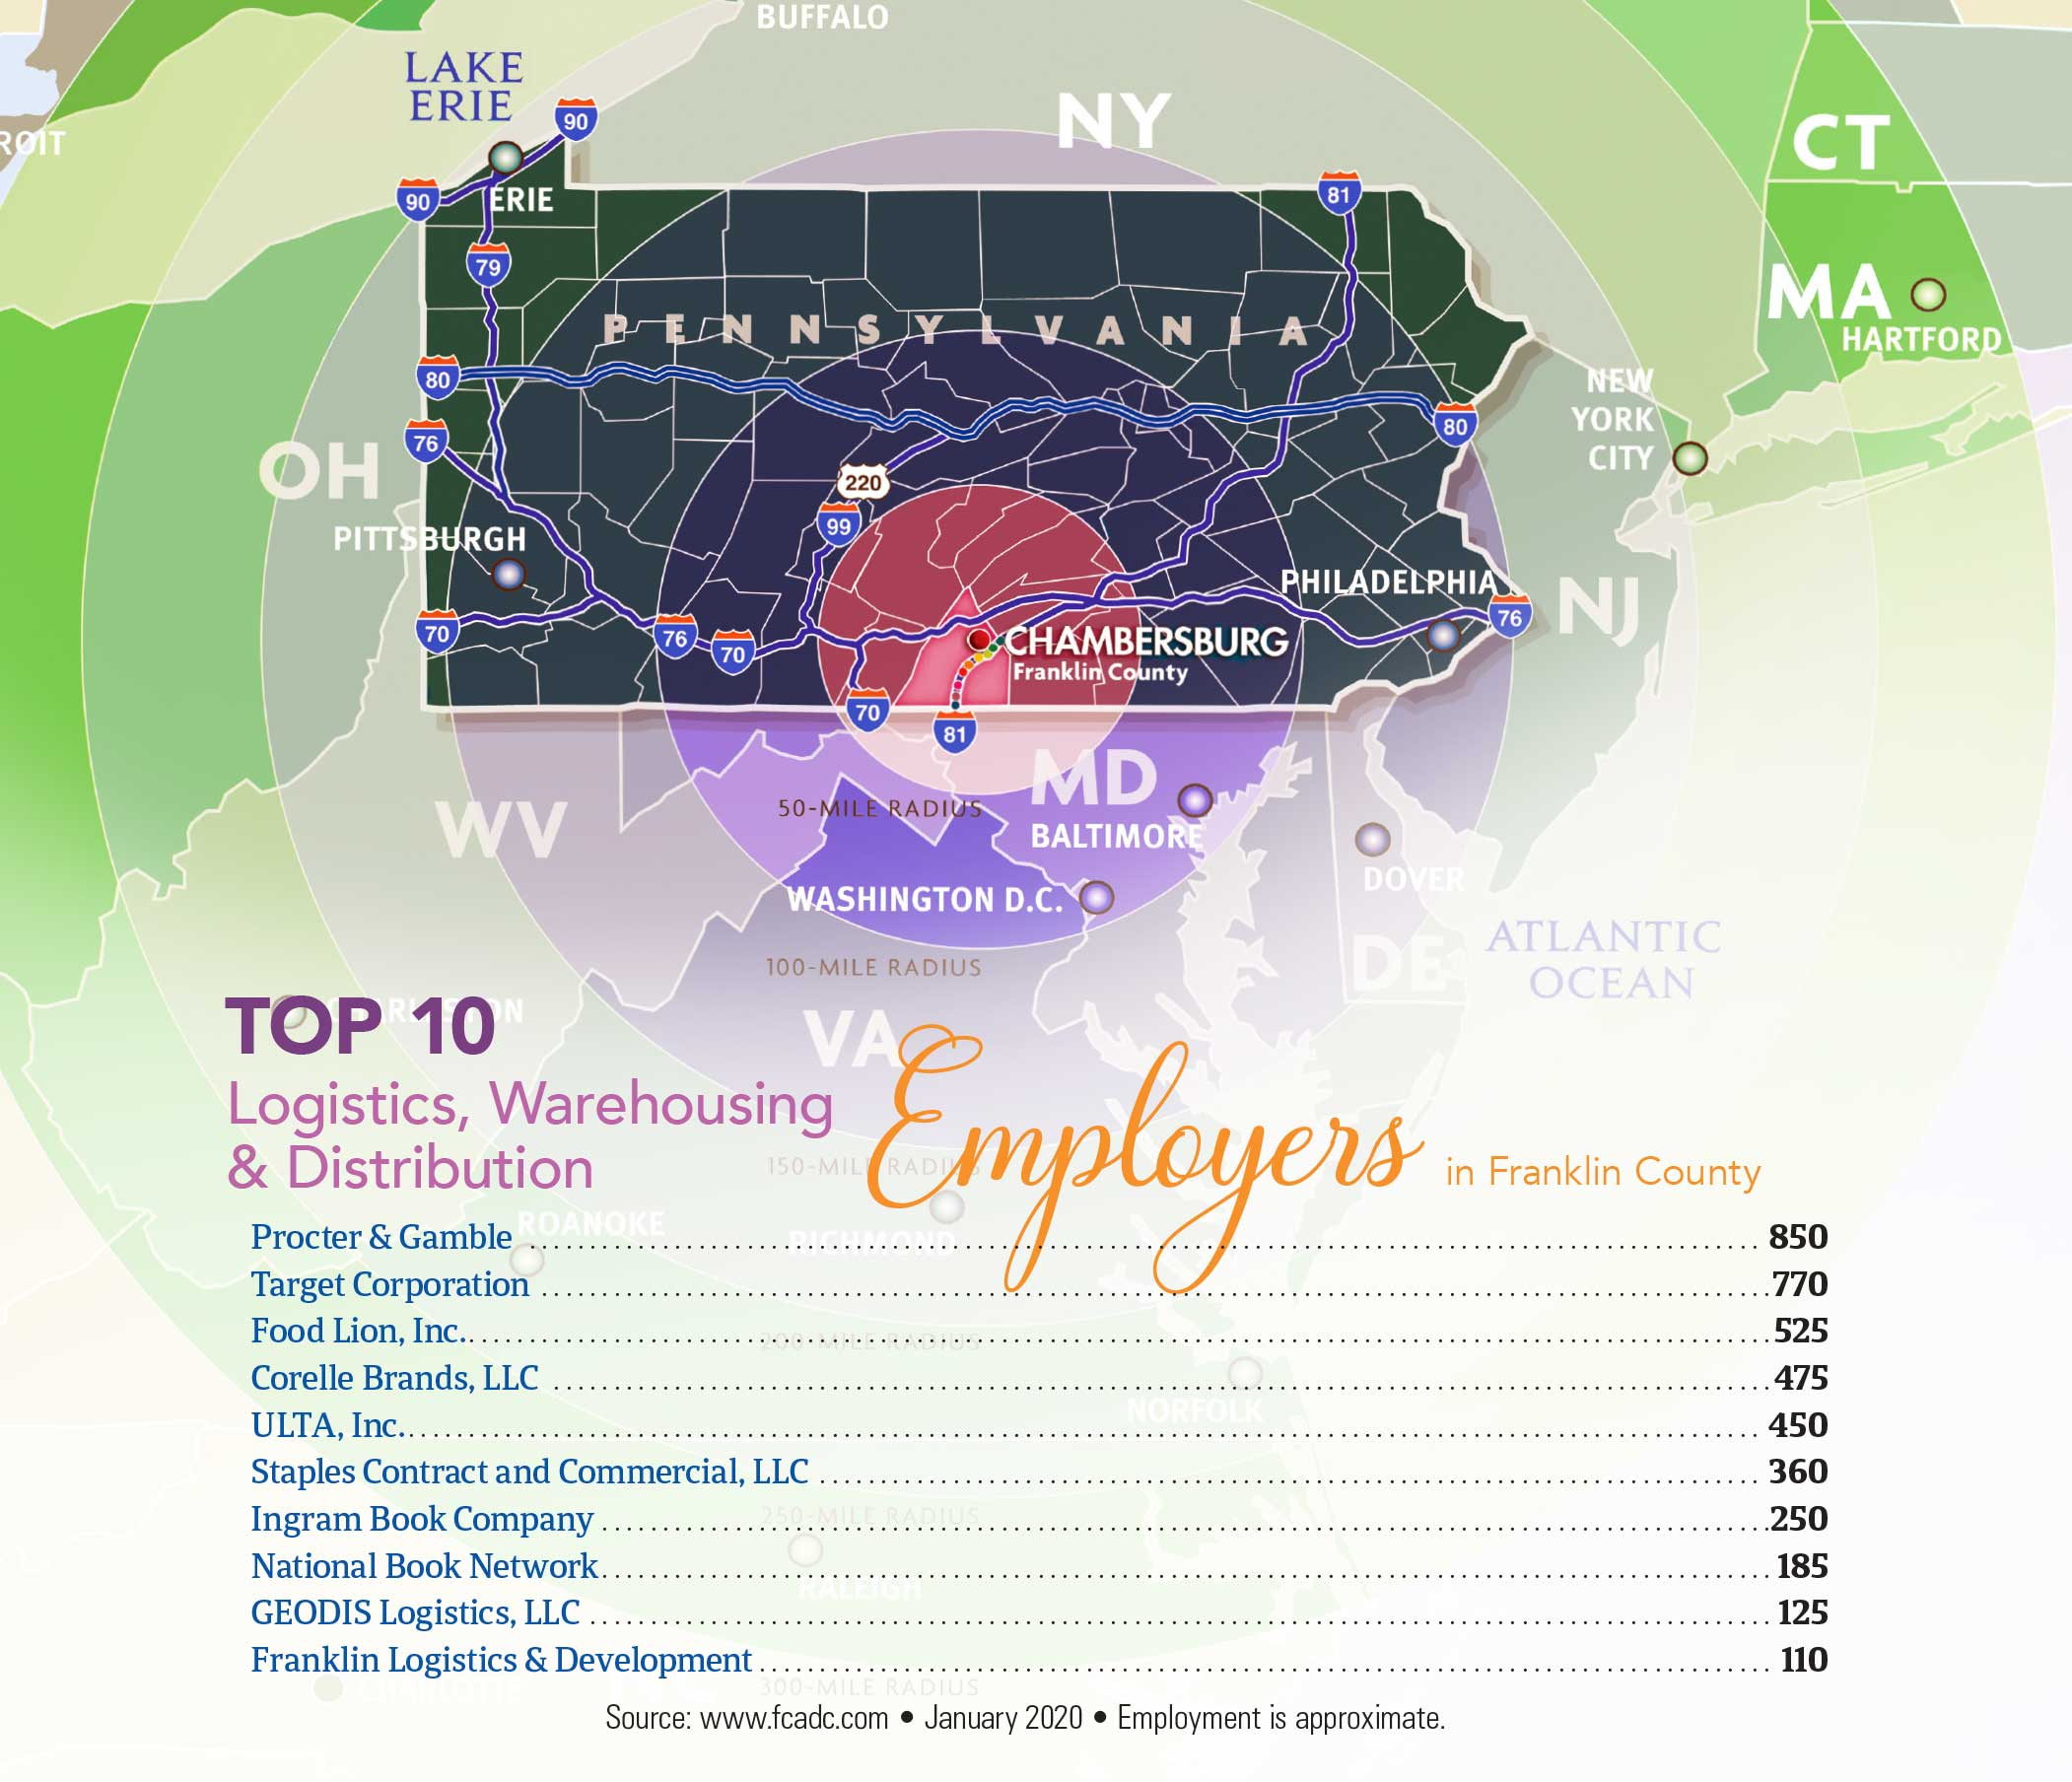 Top 10 Logistics, Warehousing & Distribution Employers in Franklin County